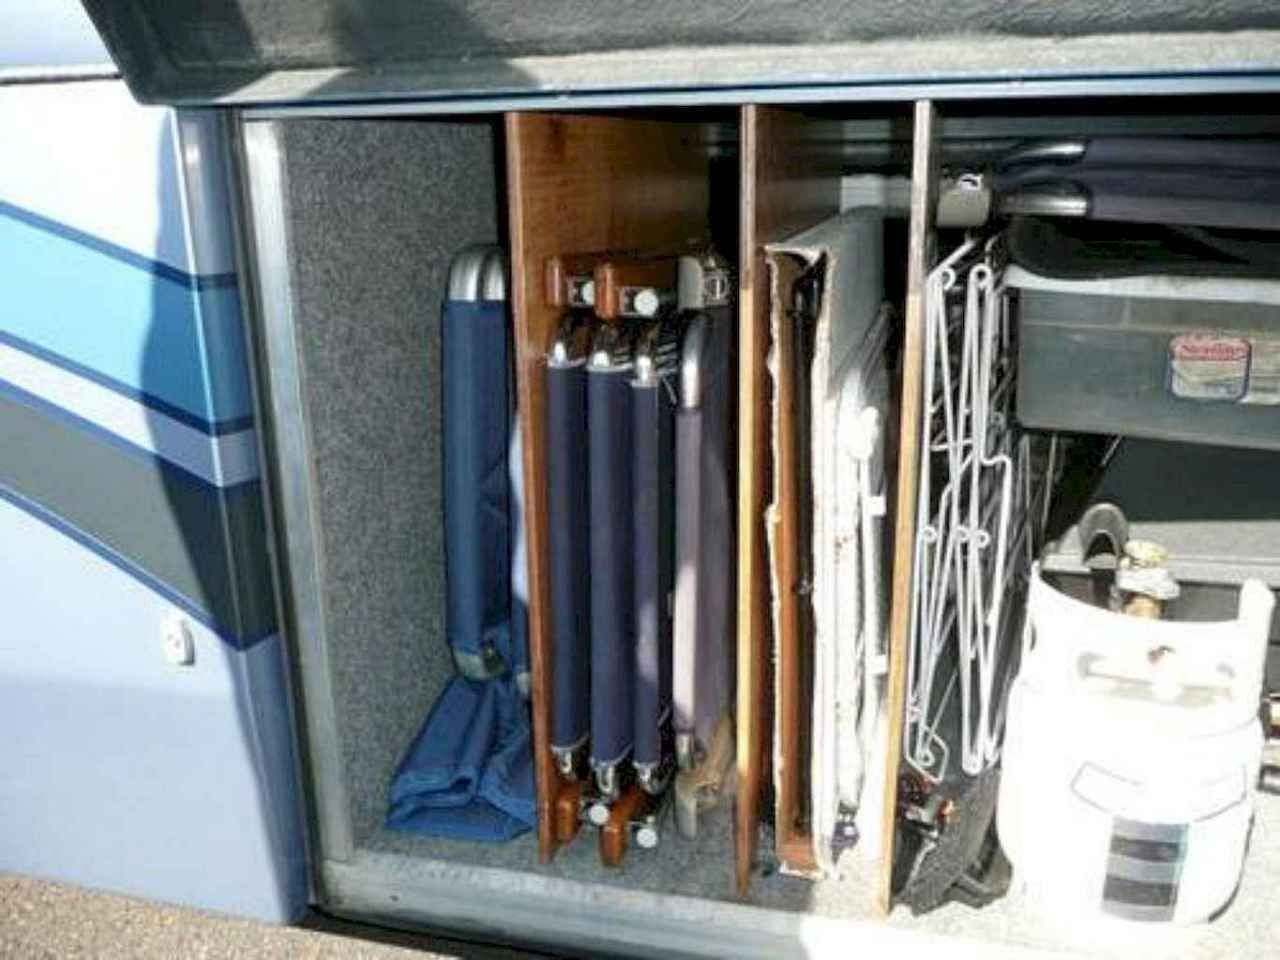 Full time rv living tips and tricks camper organization (37) - HomeSpecially #rvliving